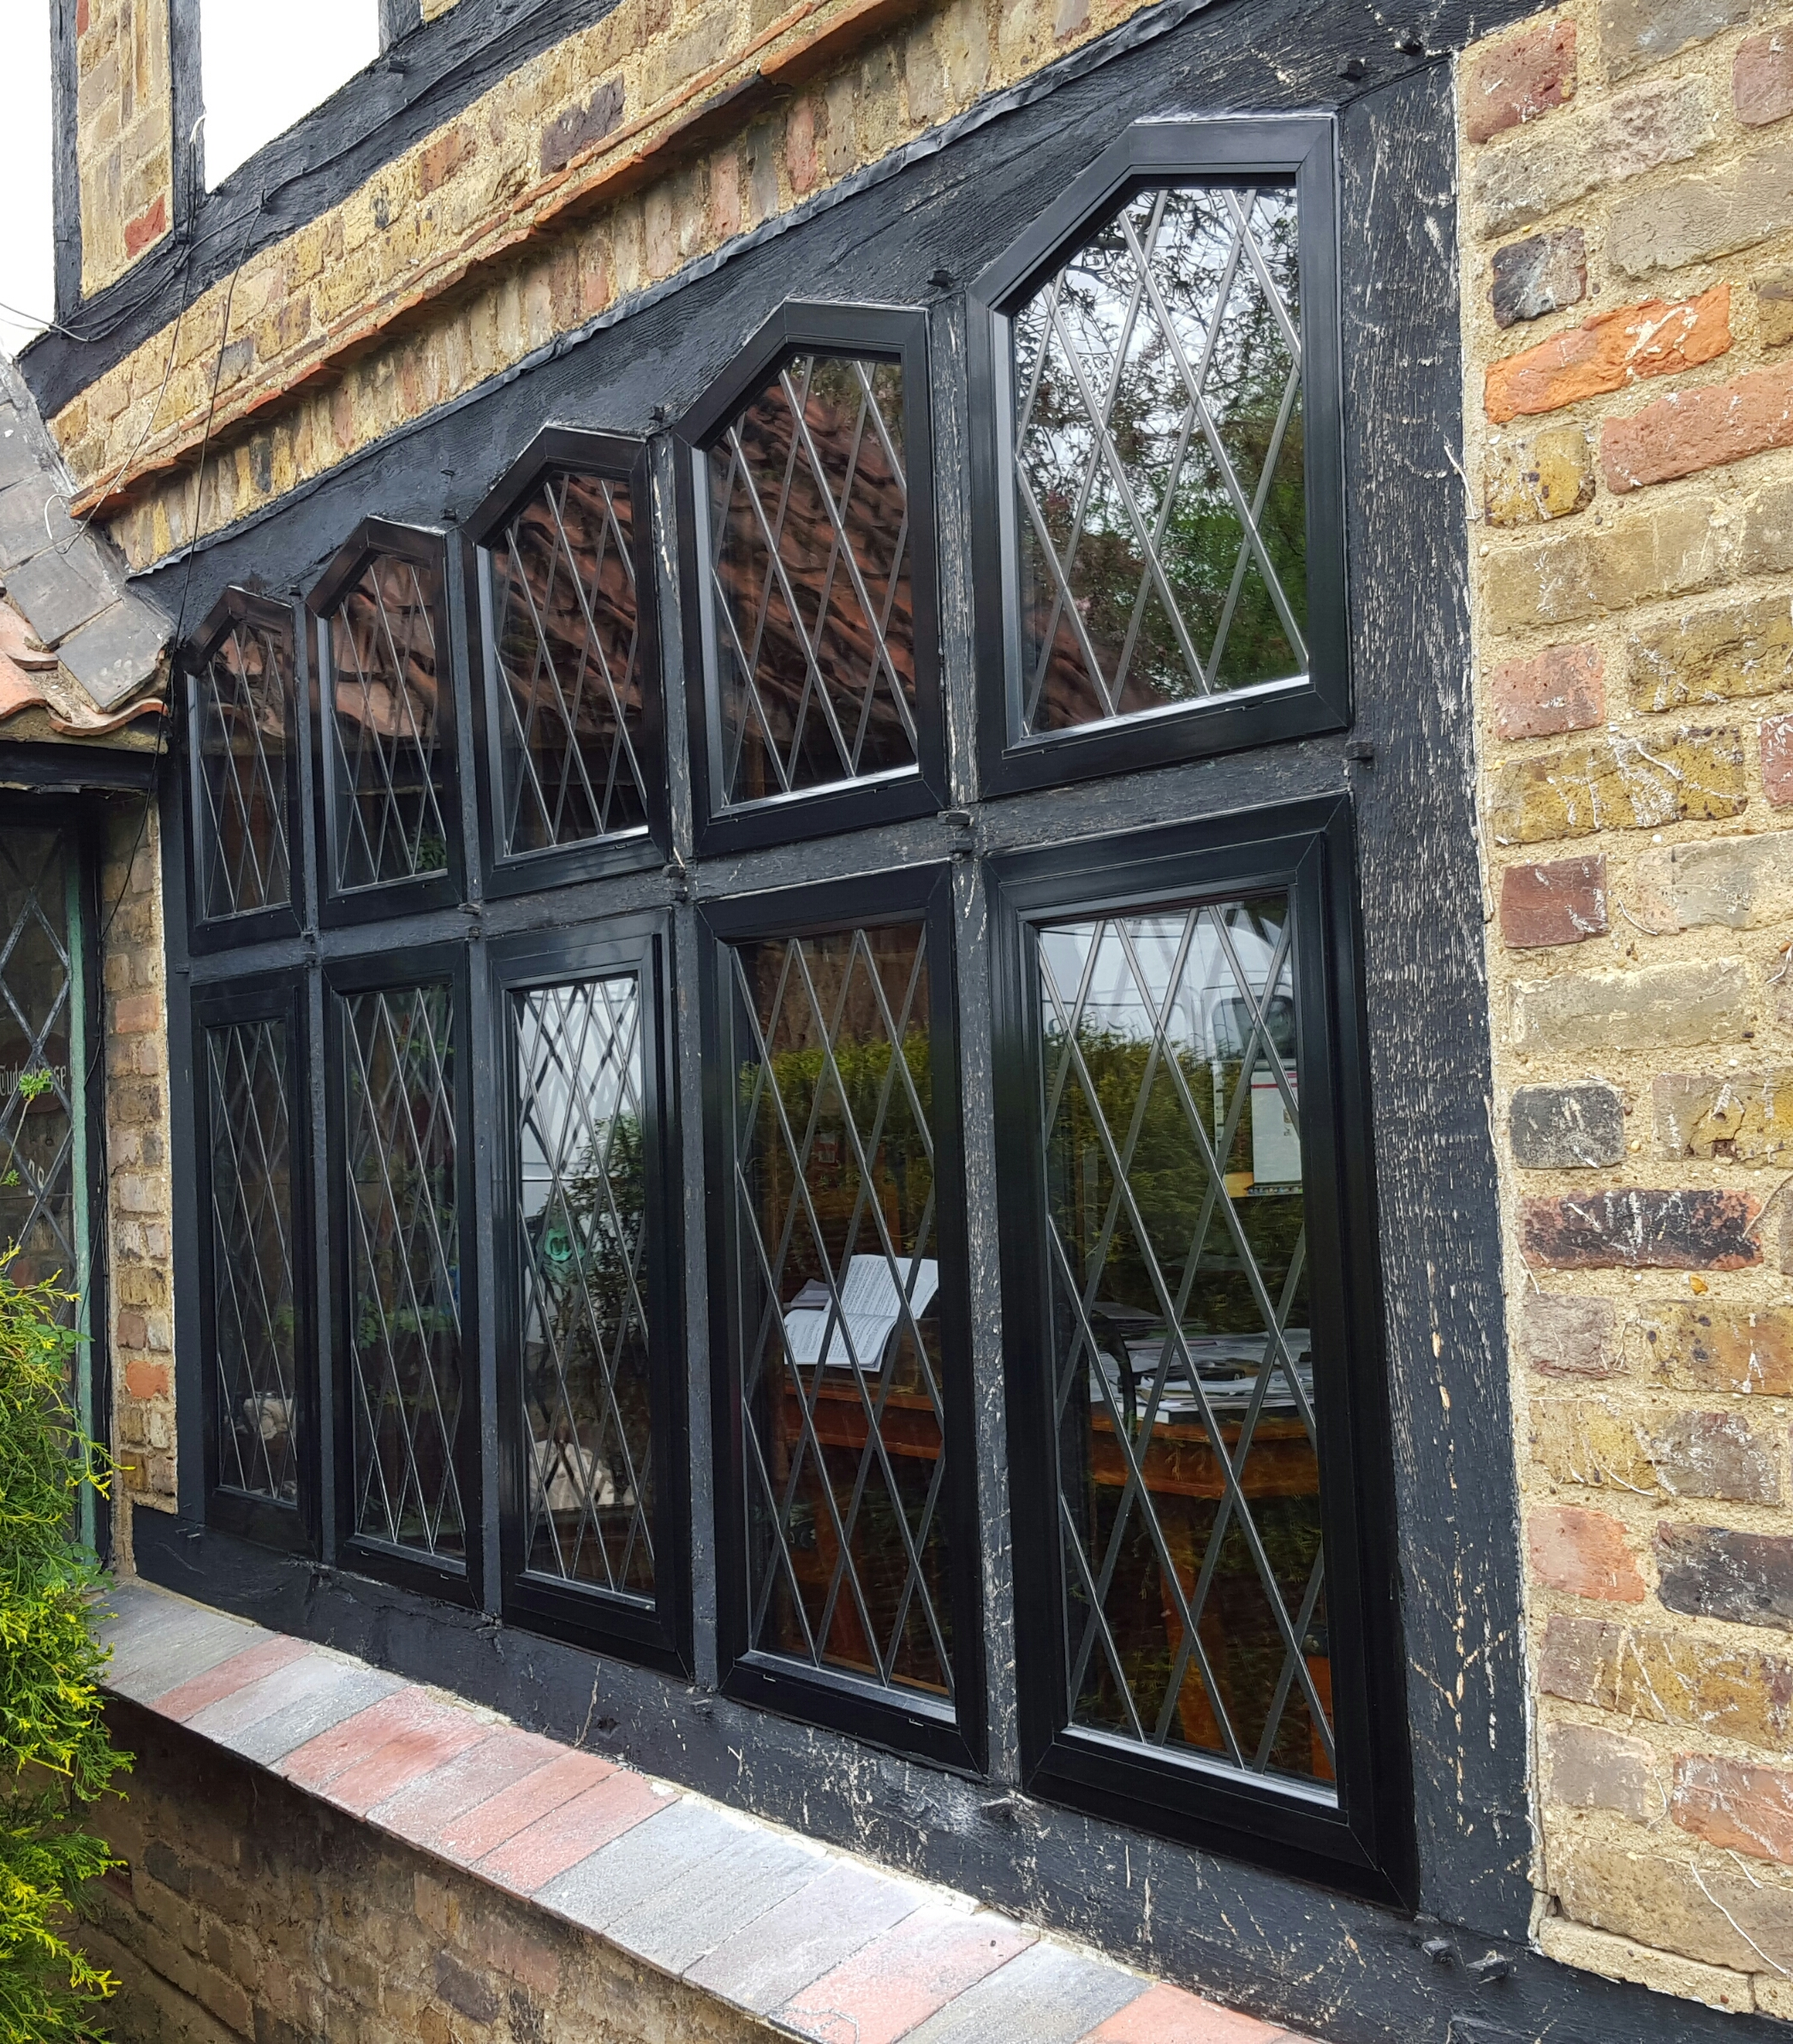 UPVC or Aluminium Windows - Making the decision between UPVC or Aluminium for your windows is an important one, to ease the difficulty of this choice please see the key differences and features of each product below:Aluminium- Aluminium is a stronger material meaning it can support a larger glass surface area hence larger windows are often aluminium framed.- Aluminium windows have slimmer profiles which achieves a more minimalist and modern look.- Aluminium windows offer a greater design flexibility as there is larger range of colours and design specifications.- Once powder-coated, aluminium is extremely durable.UPVC- UPVC windows are normally easier to maintain, often they can be wiped clean.- UPVC windows normally has a higher insulation rating (A to A+) due to its multi-chamber design.- UPVC tends to be less expensive in comparison.